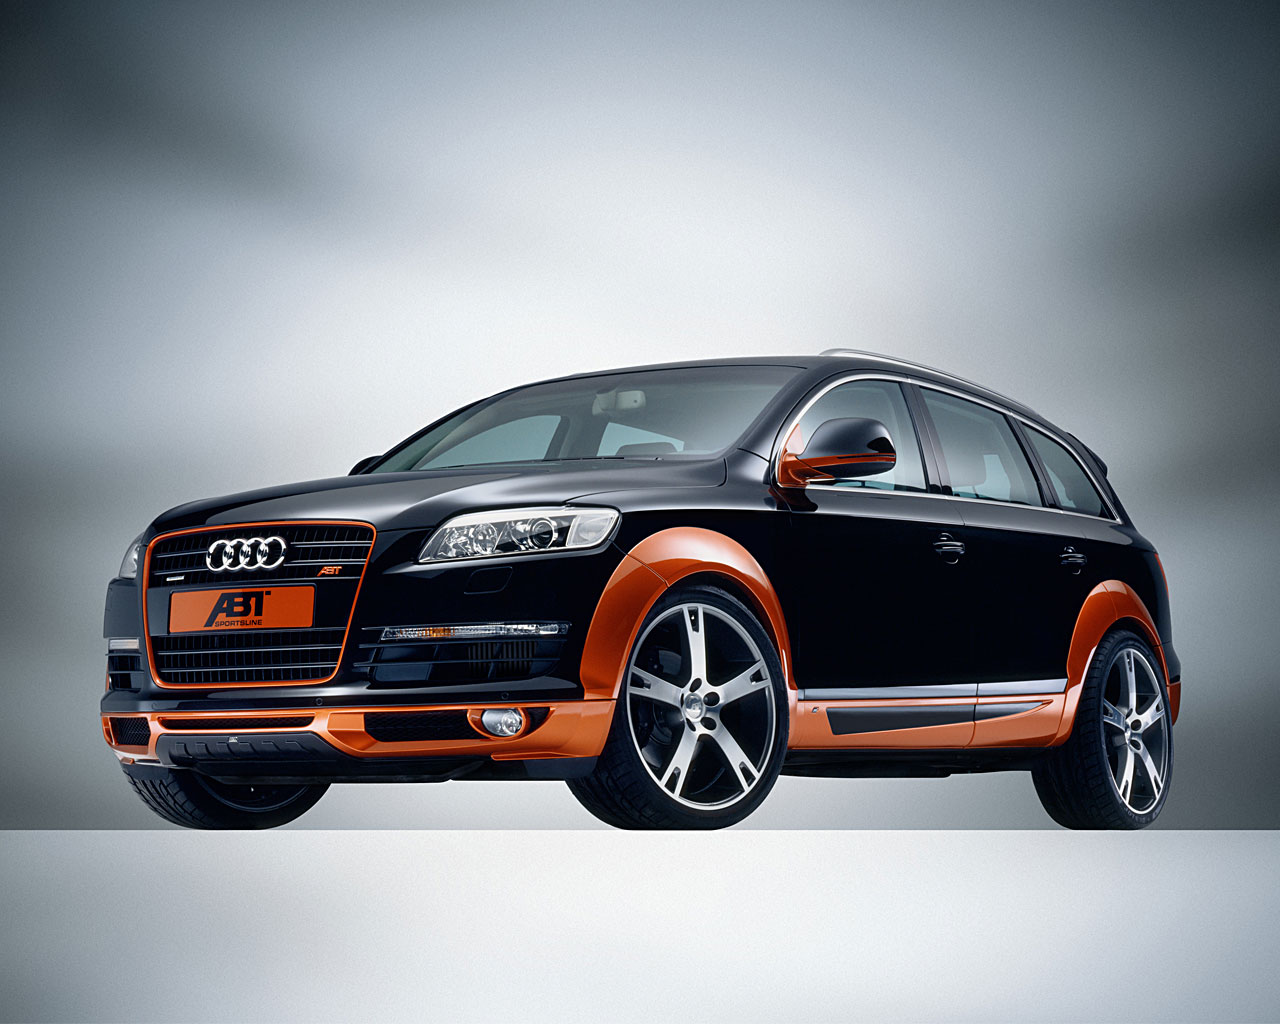 Audi Q7 2006 Abt Sportsline Tuning Wallpapers By Cars Wallpapers Net